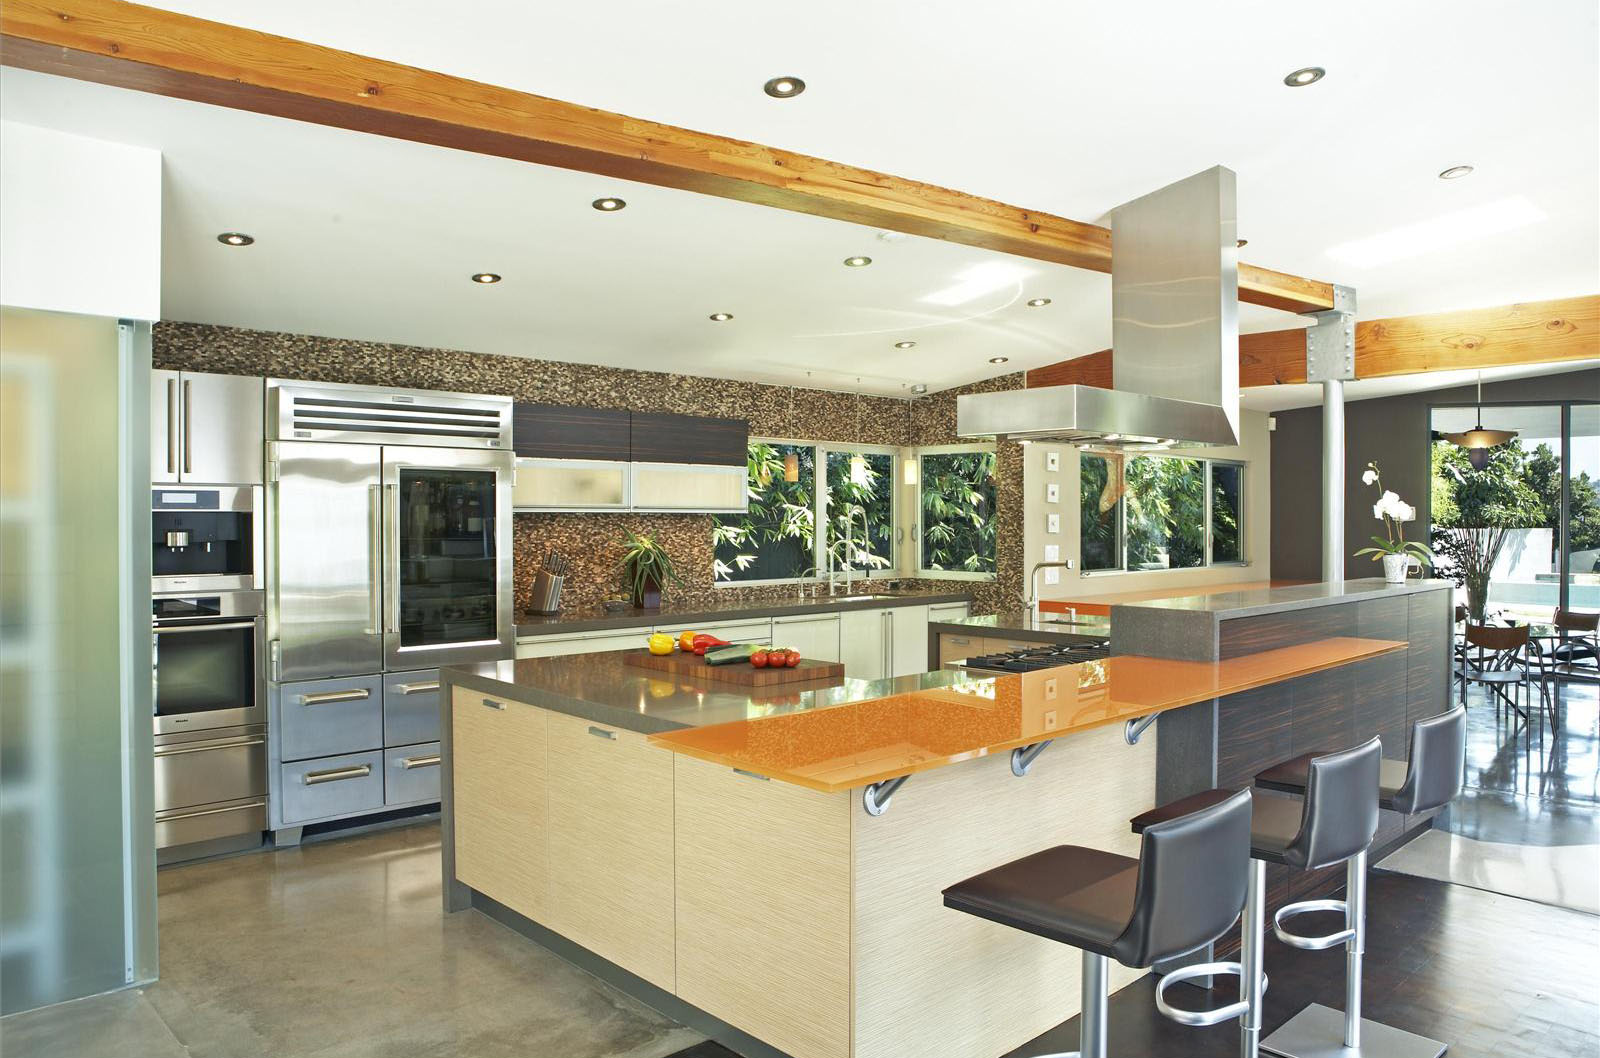 Open Contemporary Kitchen Design Ideas Idesignarch Interior Design Architecture Interior